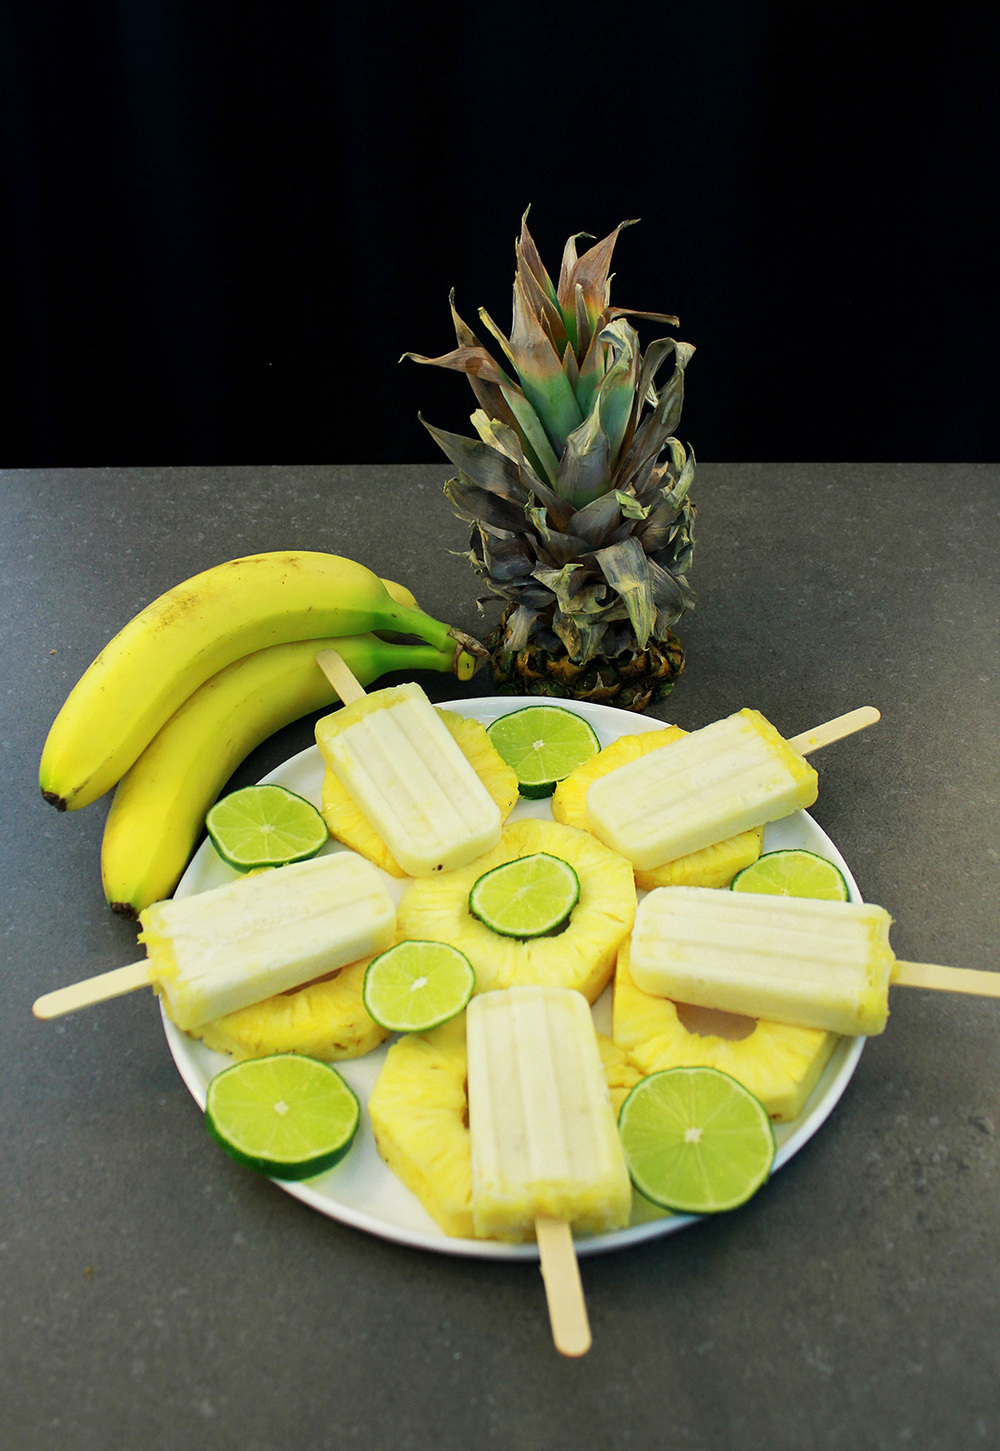 Vegan Pina Colada Popsicle Platter is so tropical!